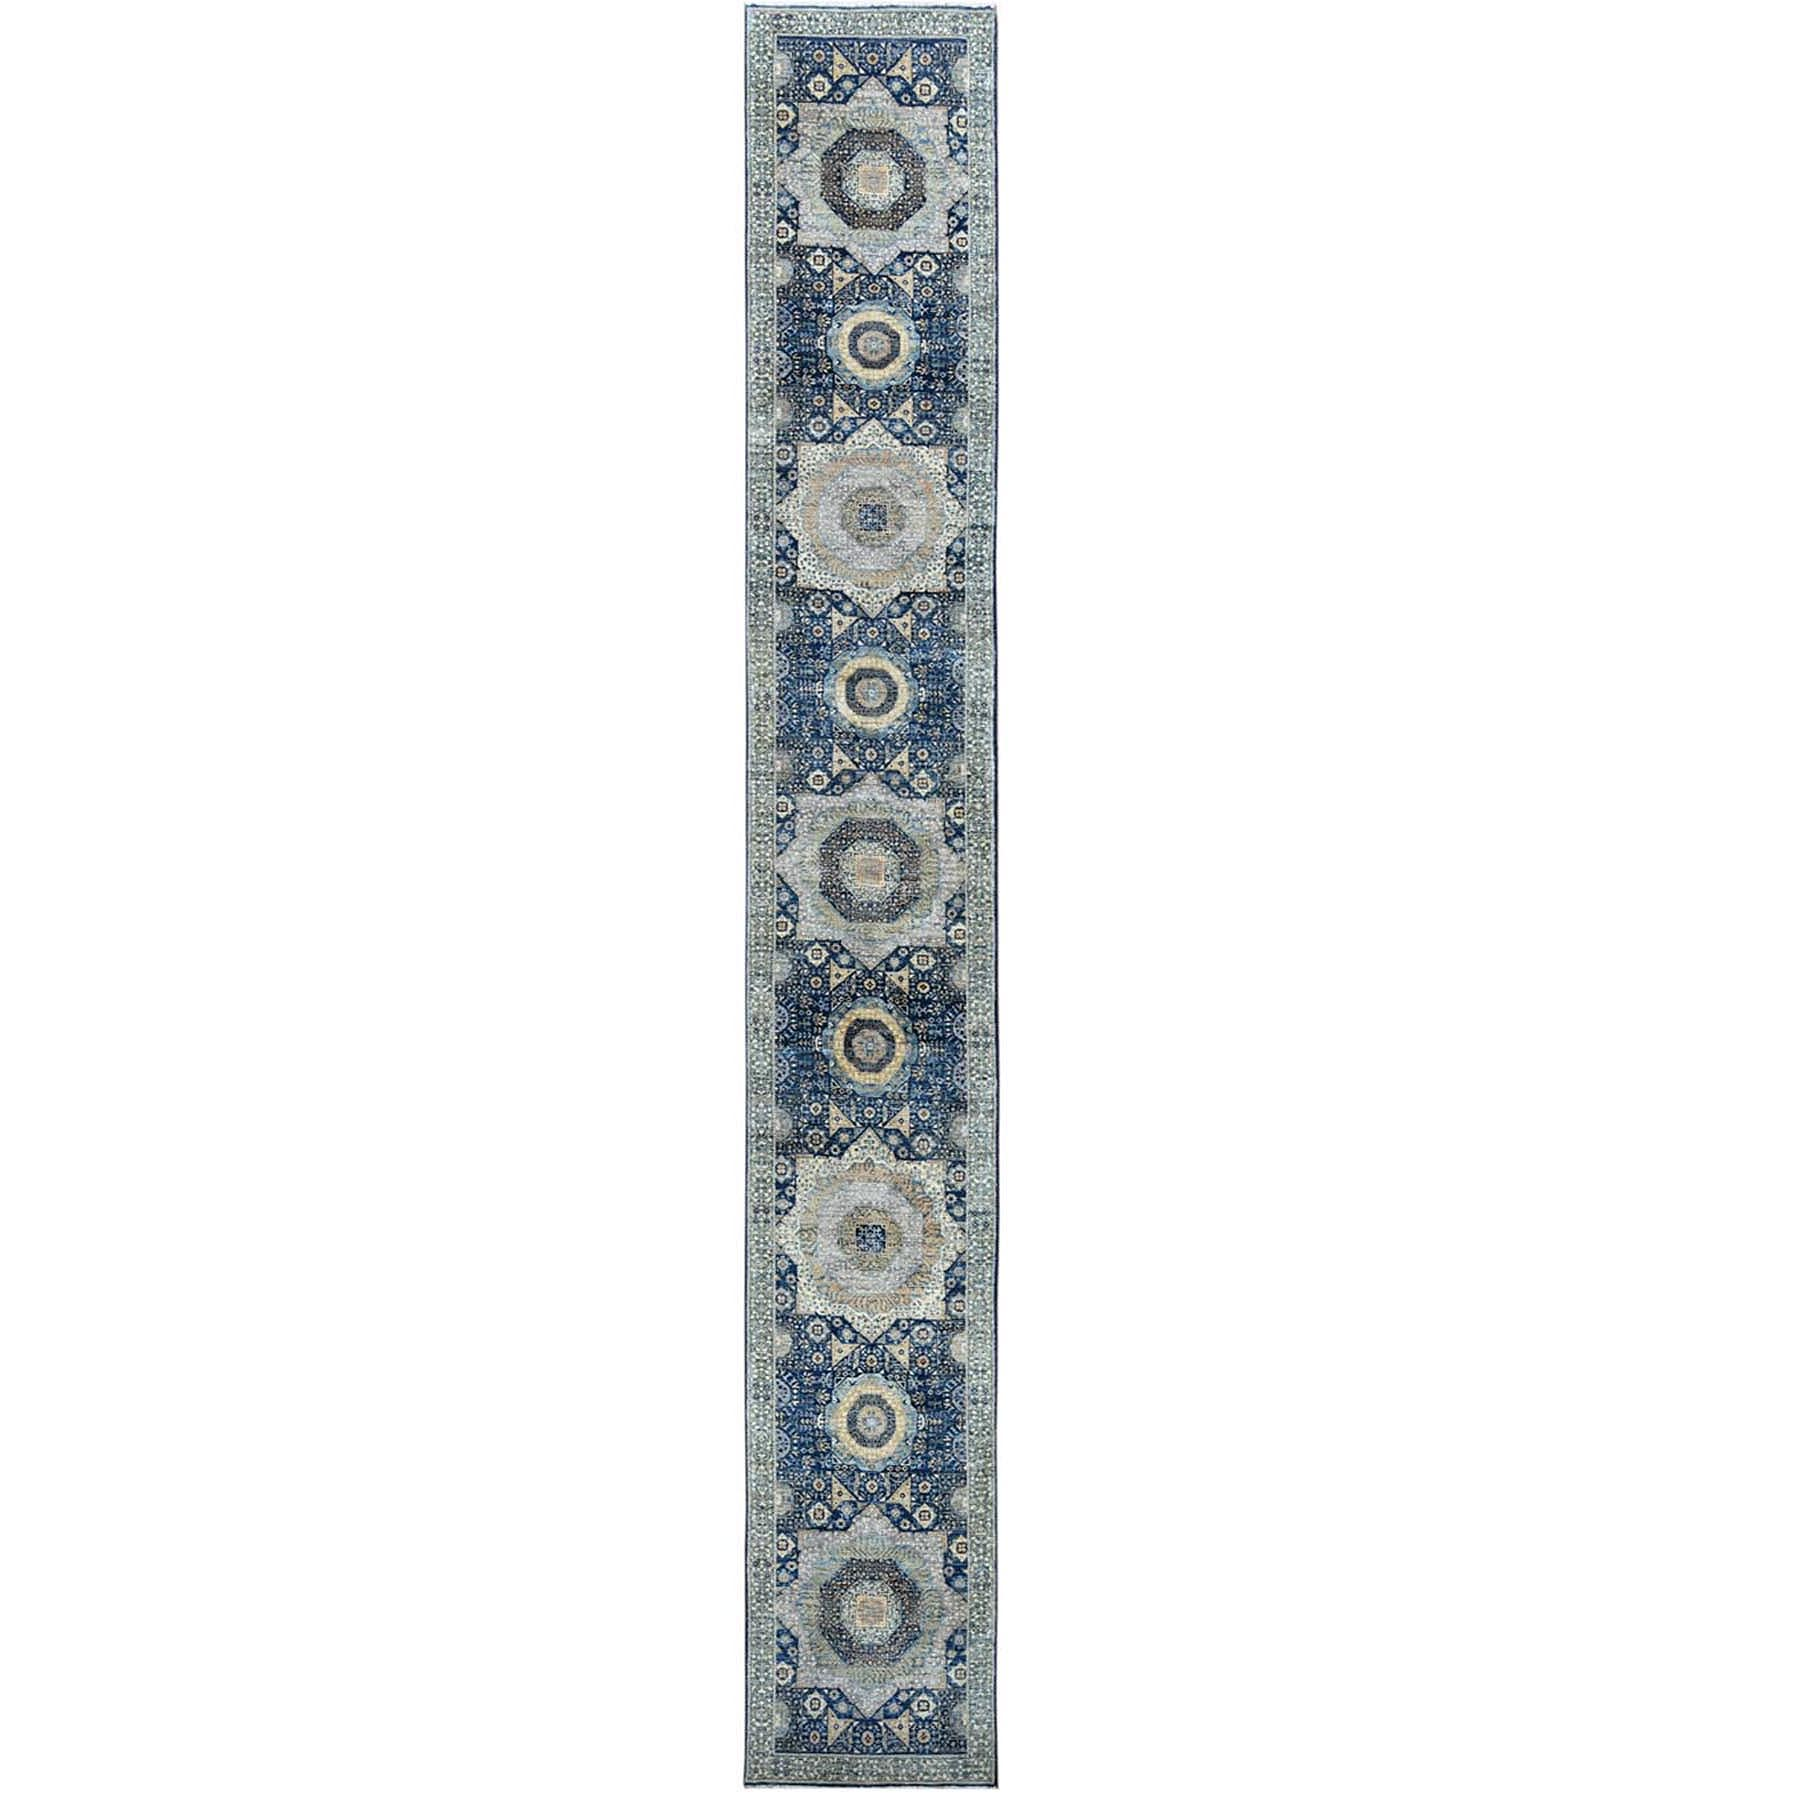 "2'5""x17'10"" Blue Super Fine Peshawar Mamluk Design With Denser Weave Shiny Wool Even Pile Hand Knotted XL Runner Oriental Rug"